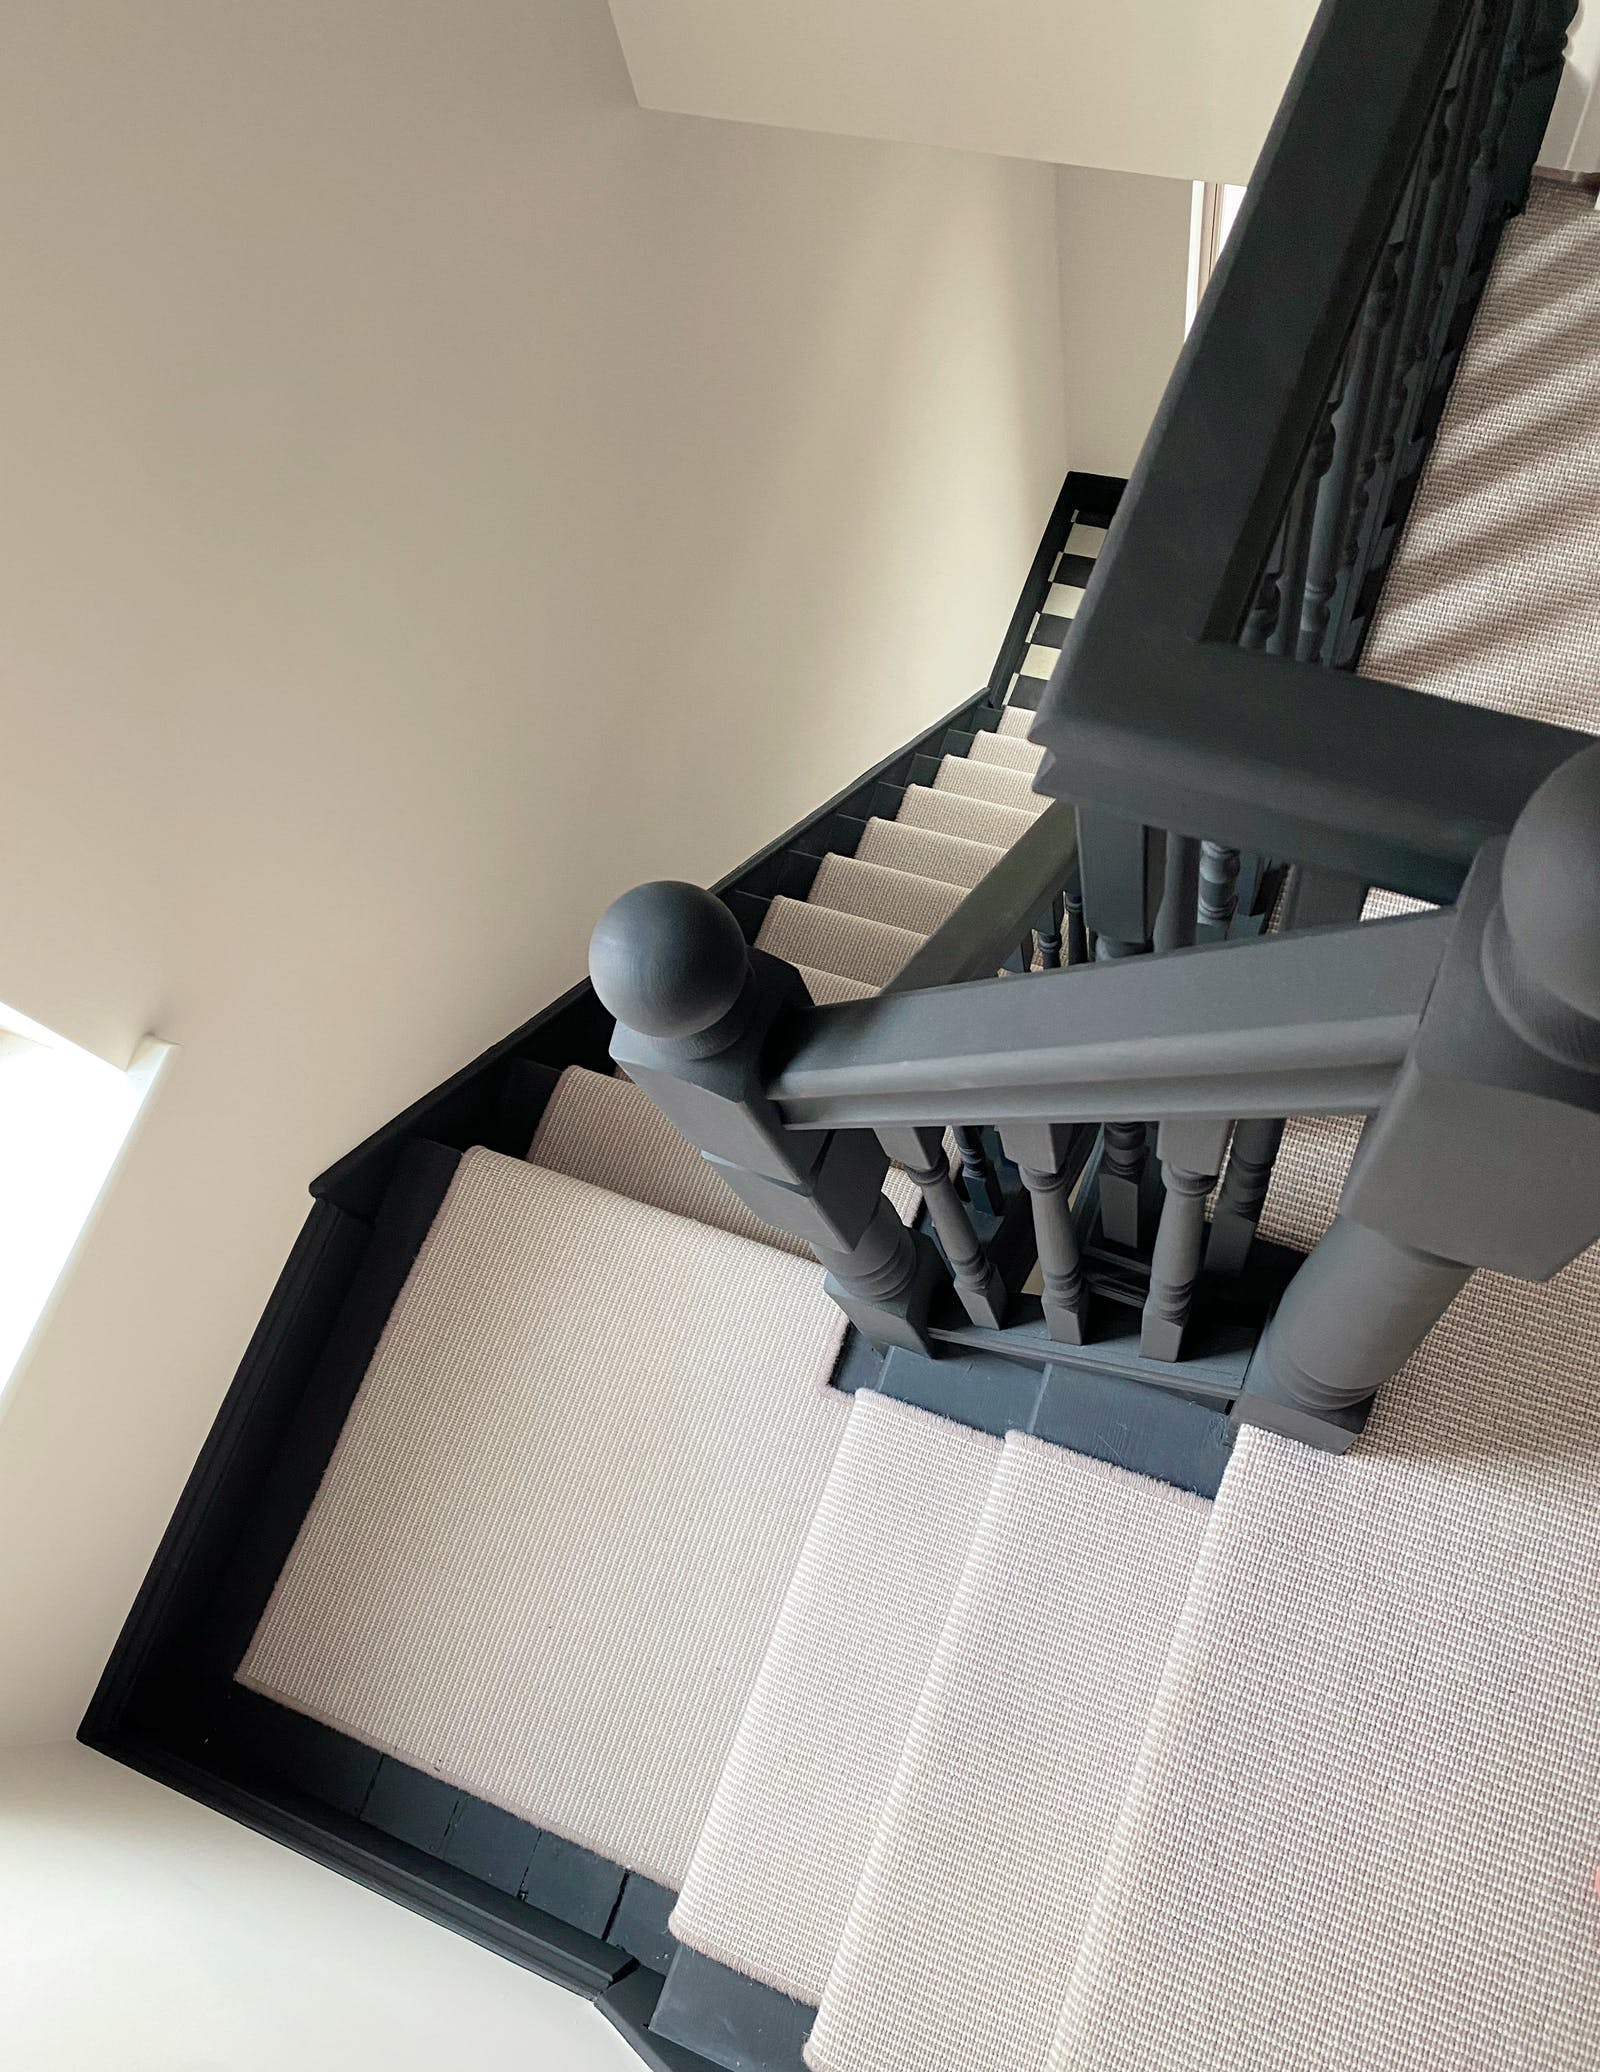 Bird's eye view of stairs with black railing and skirting board